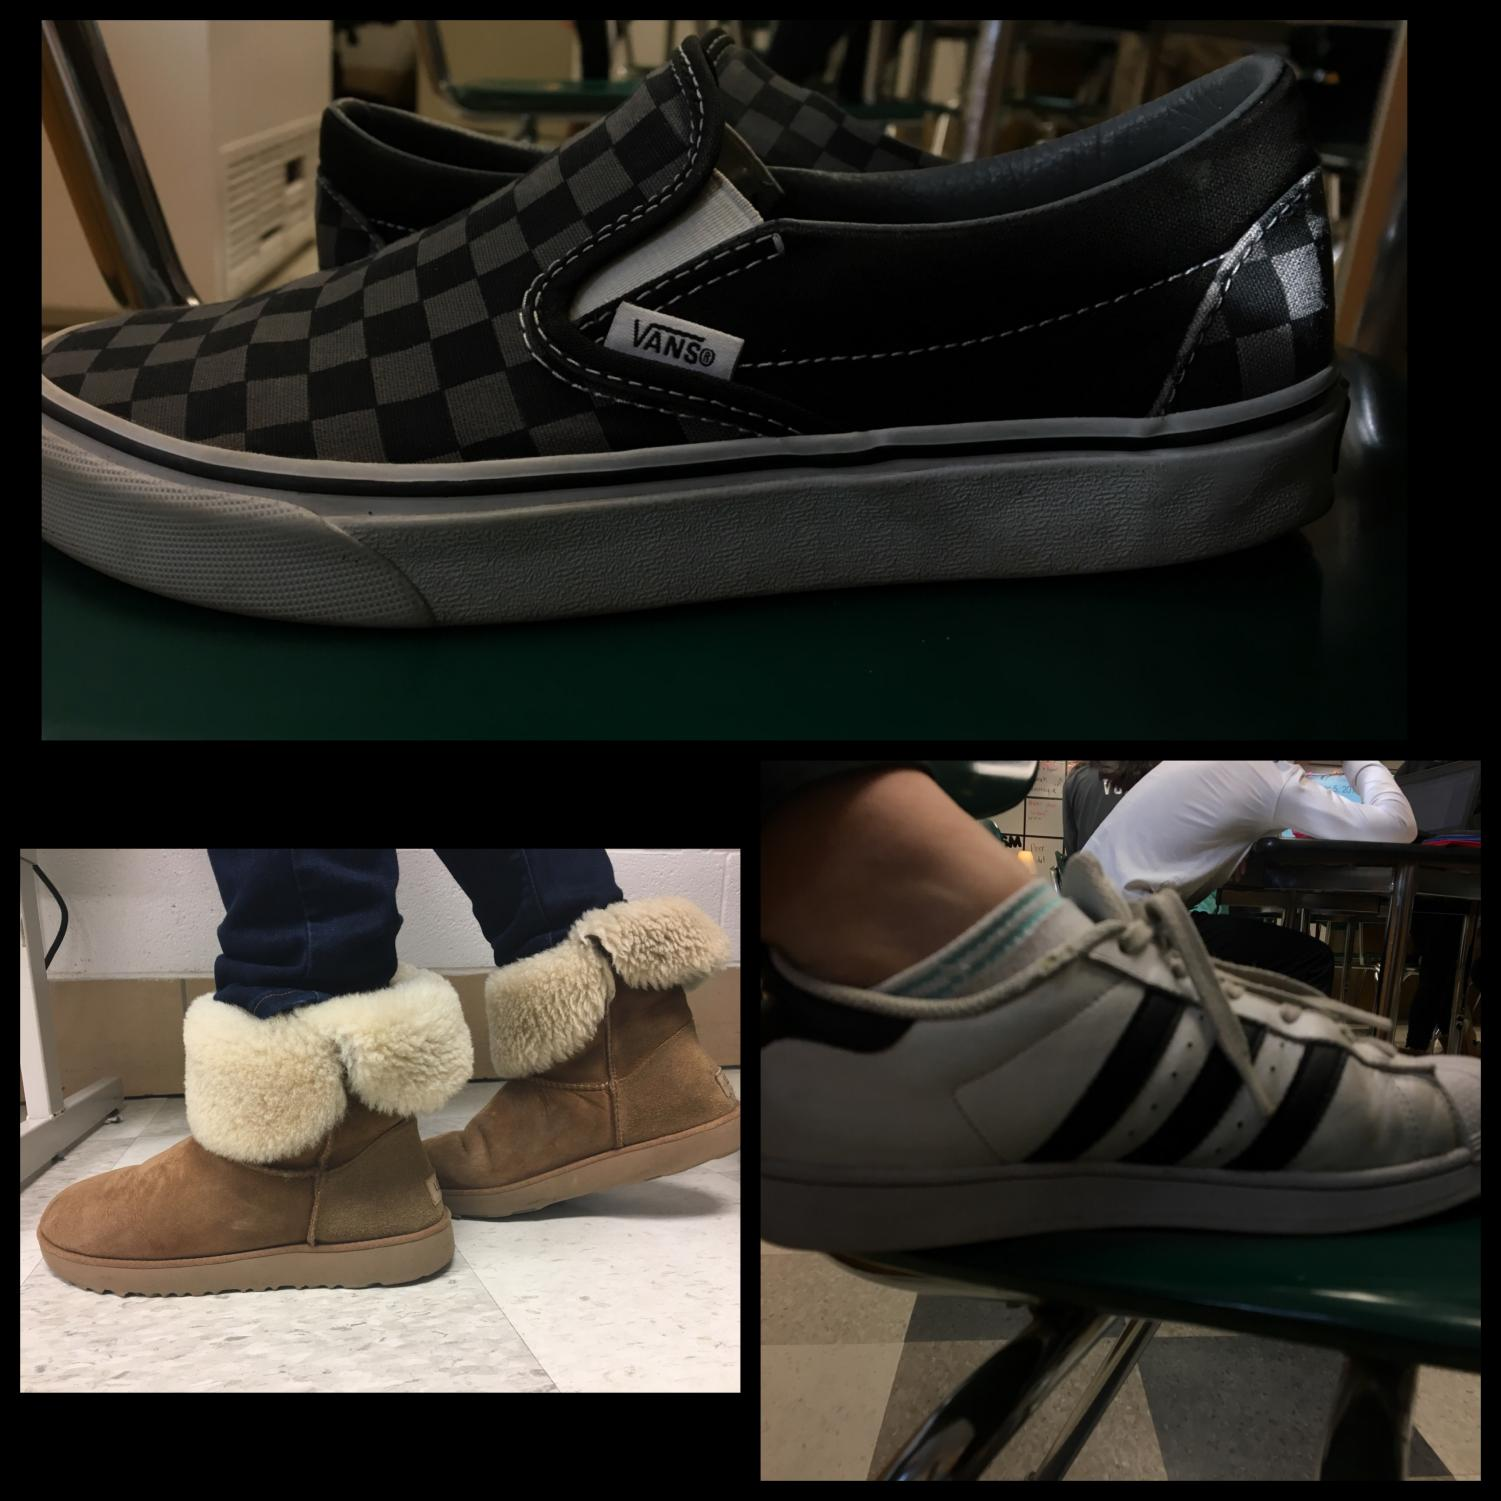 Top=Vans, left=UGGs, and right=Adidas Superstars